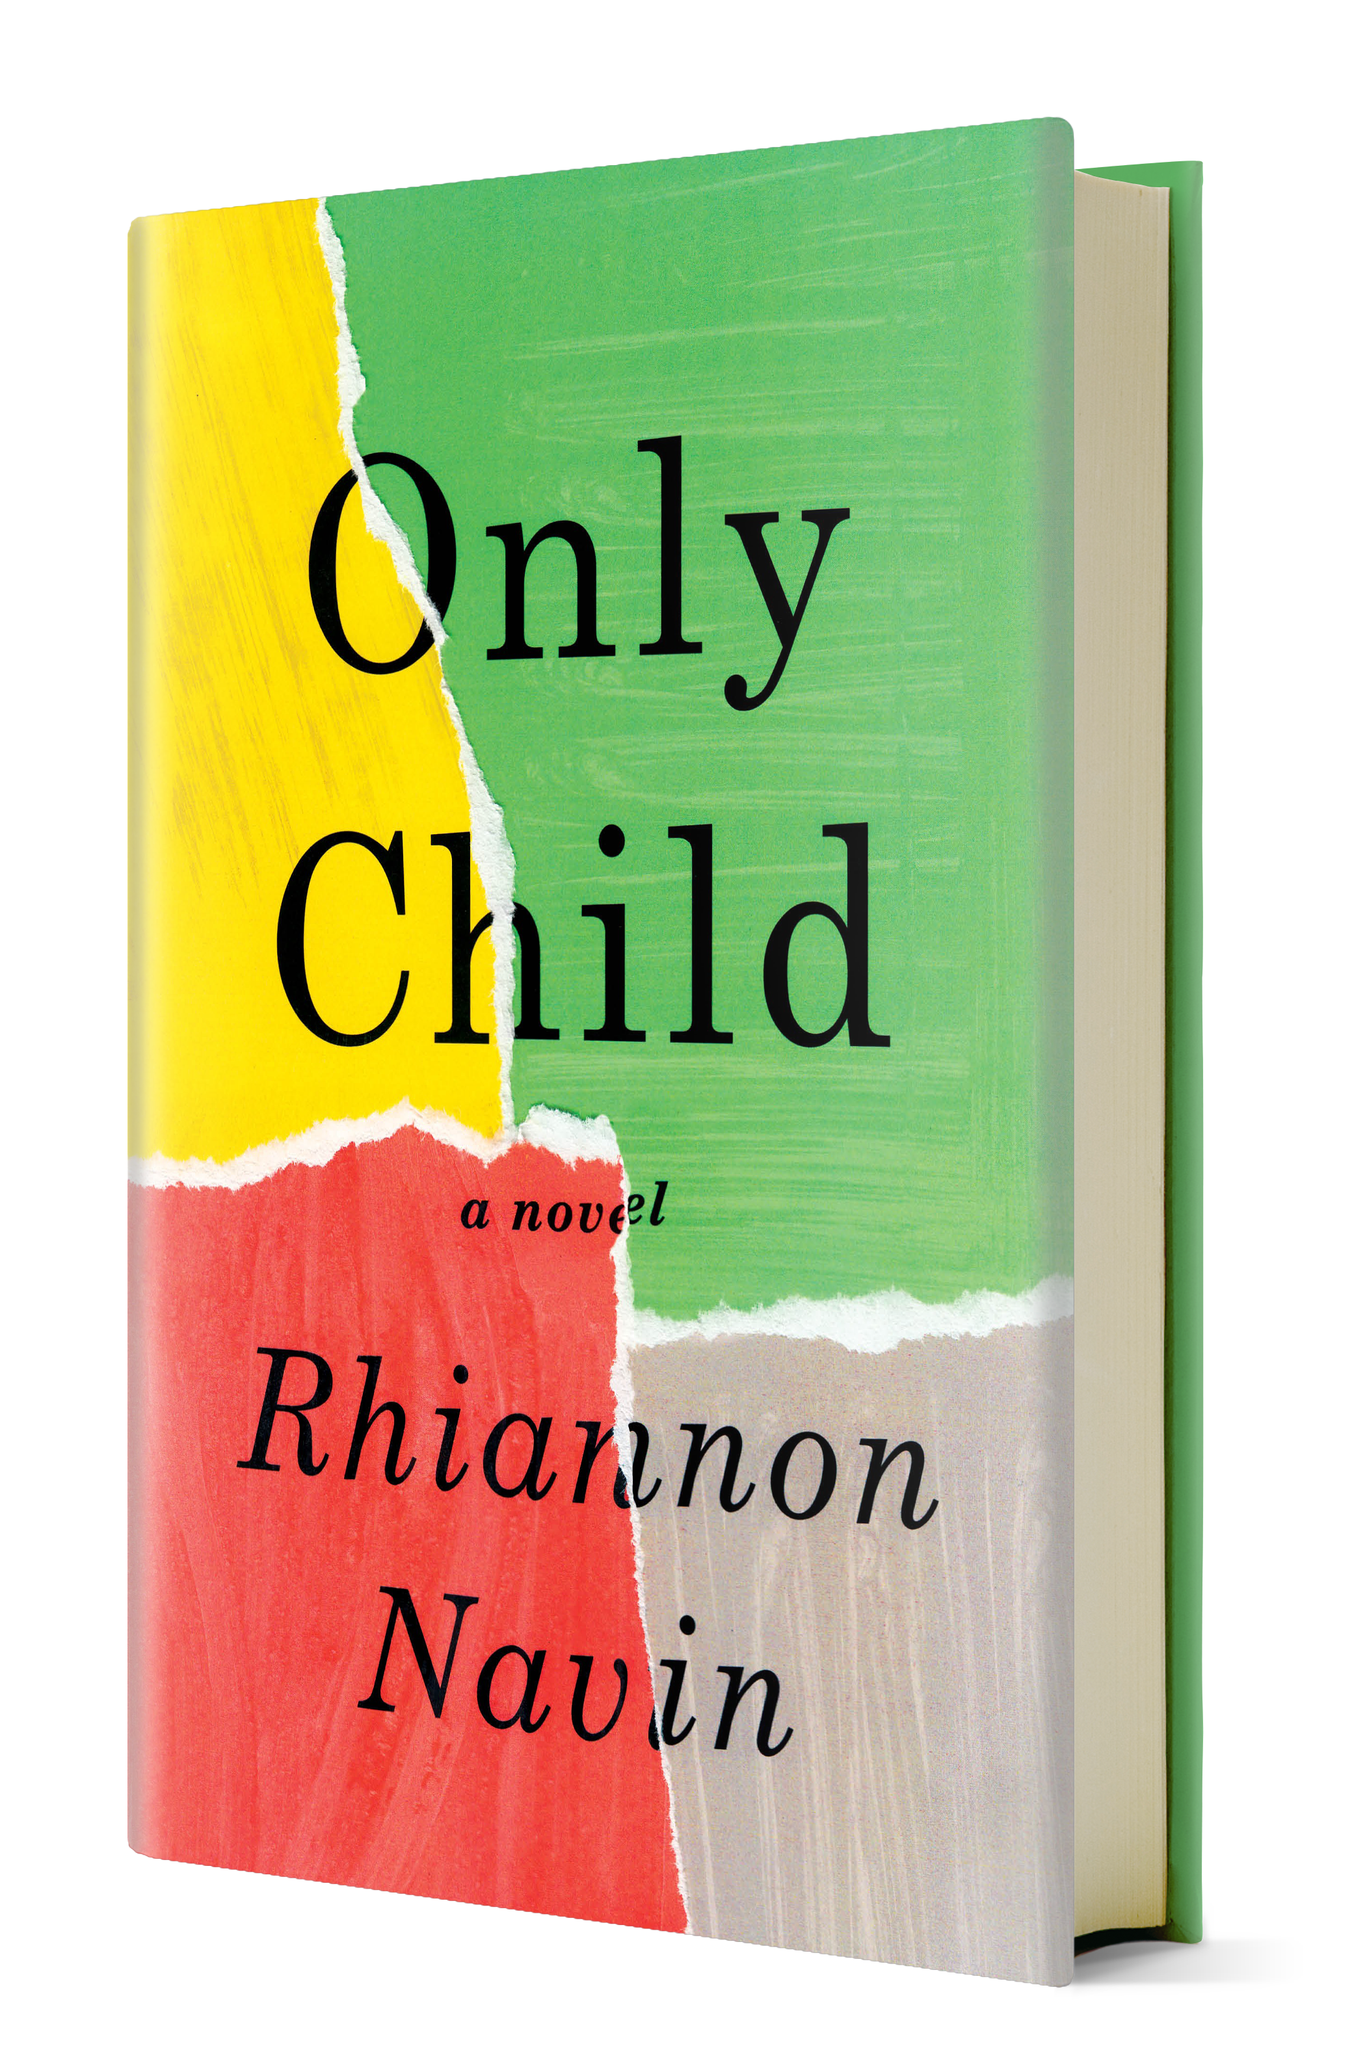 Only Child , a novel by Rhiannon Navin